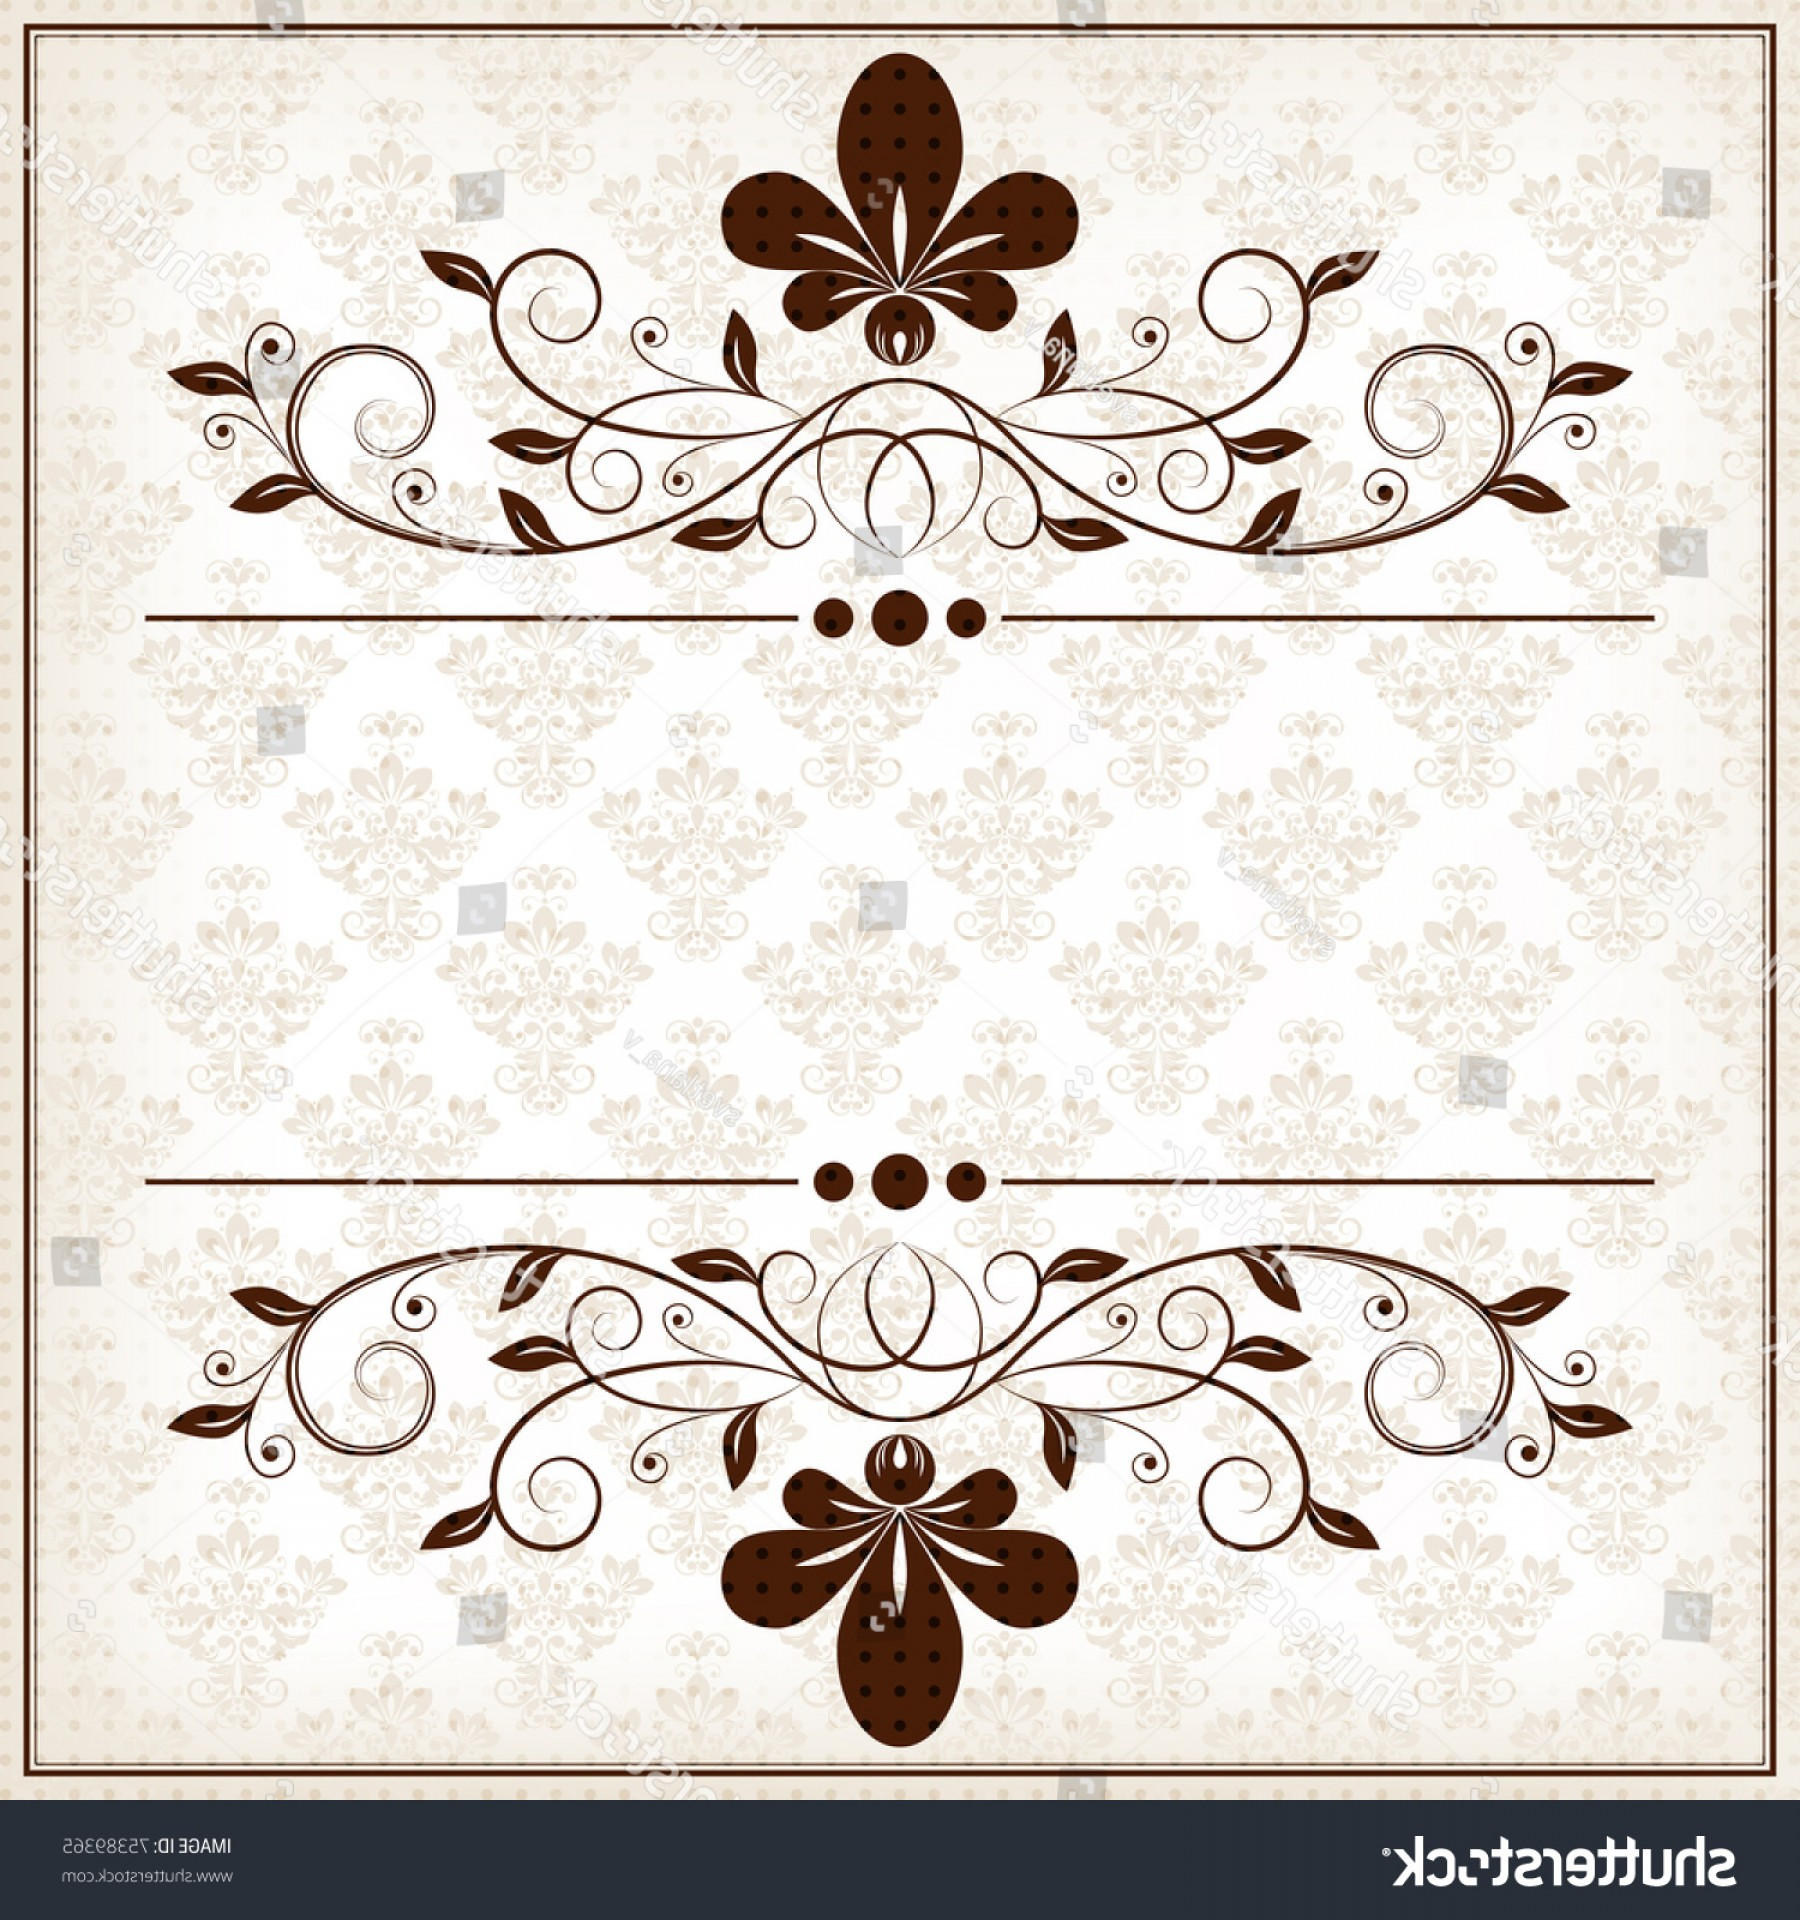 Floral Vector Calligraphy: Vector Calligraphy Vintage Floral Background Decorative